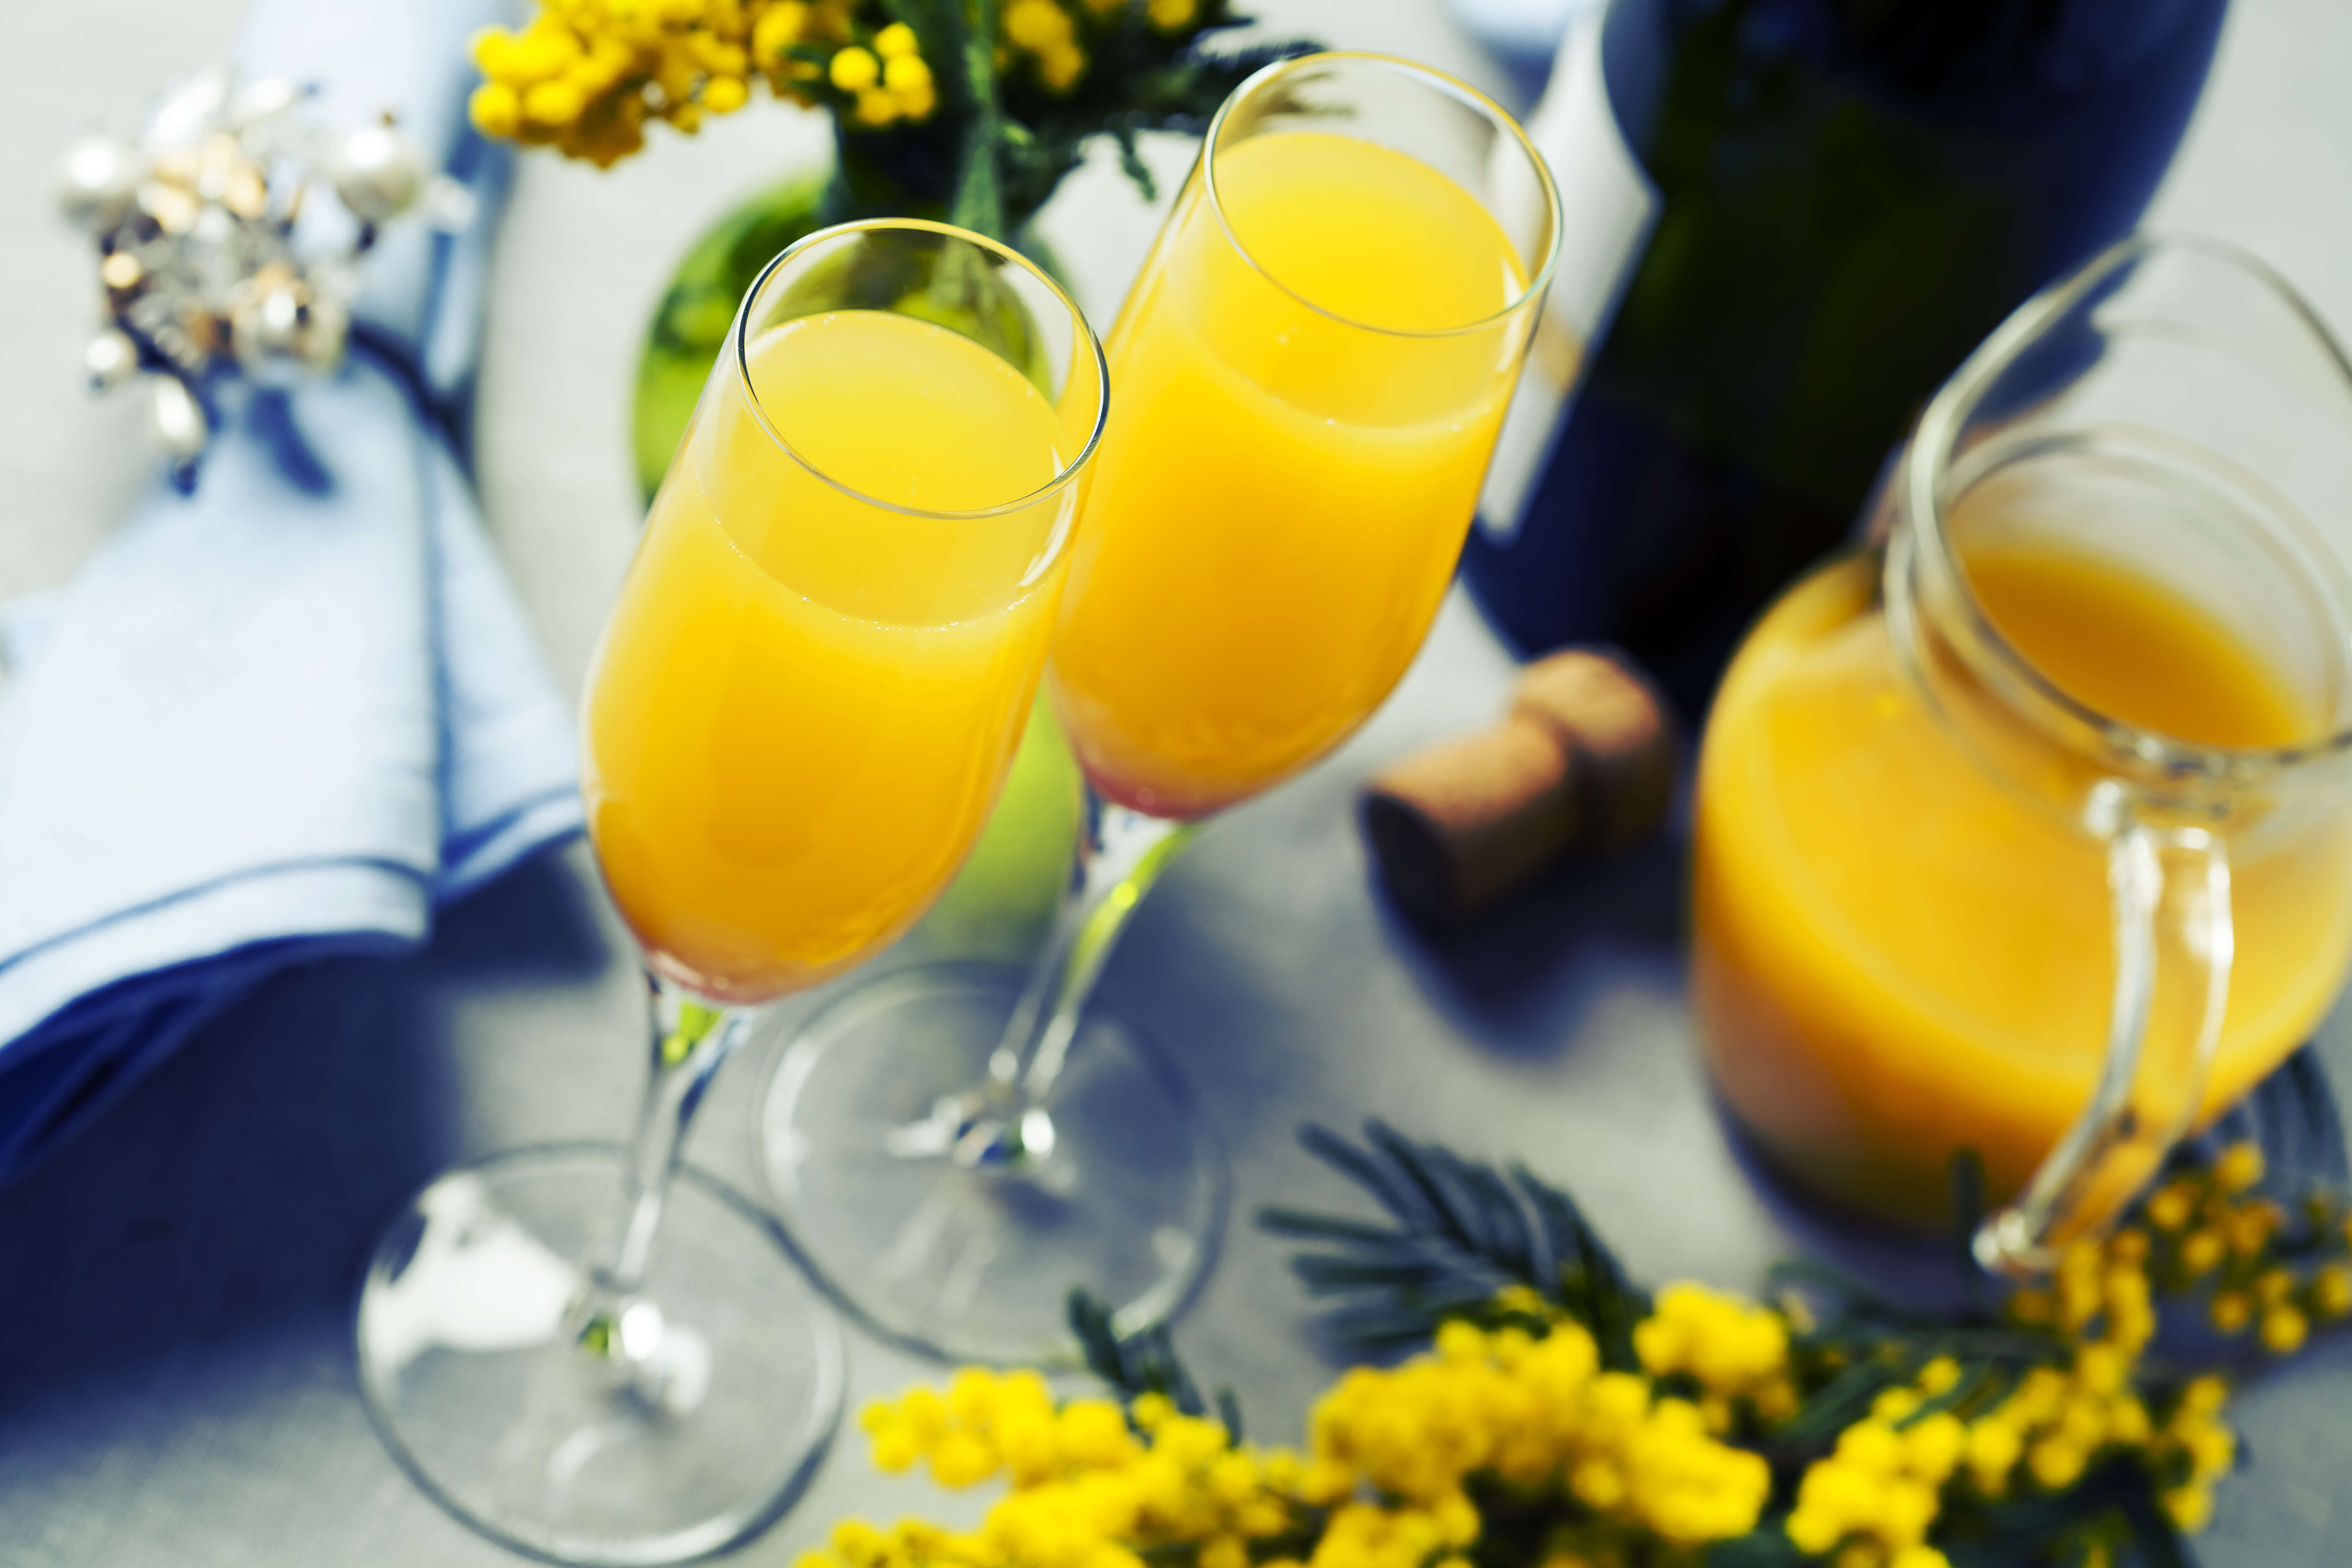 Celebrate National Mimosa Day in Baltimore - blog post image